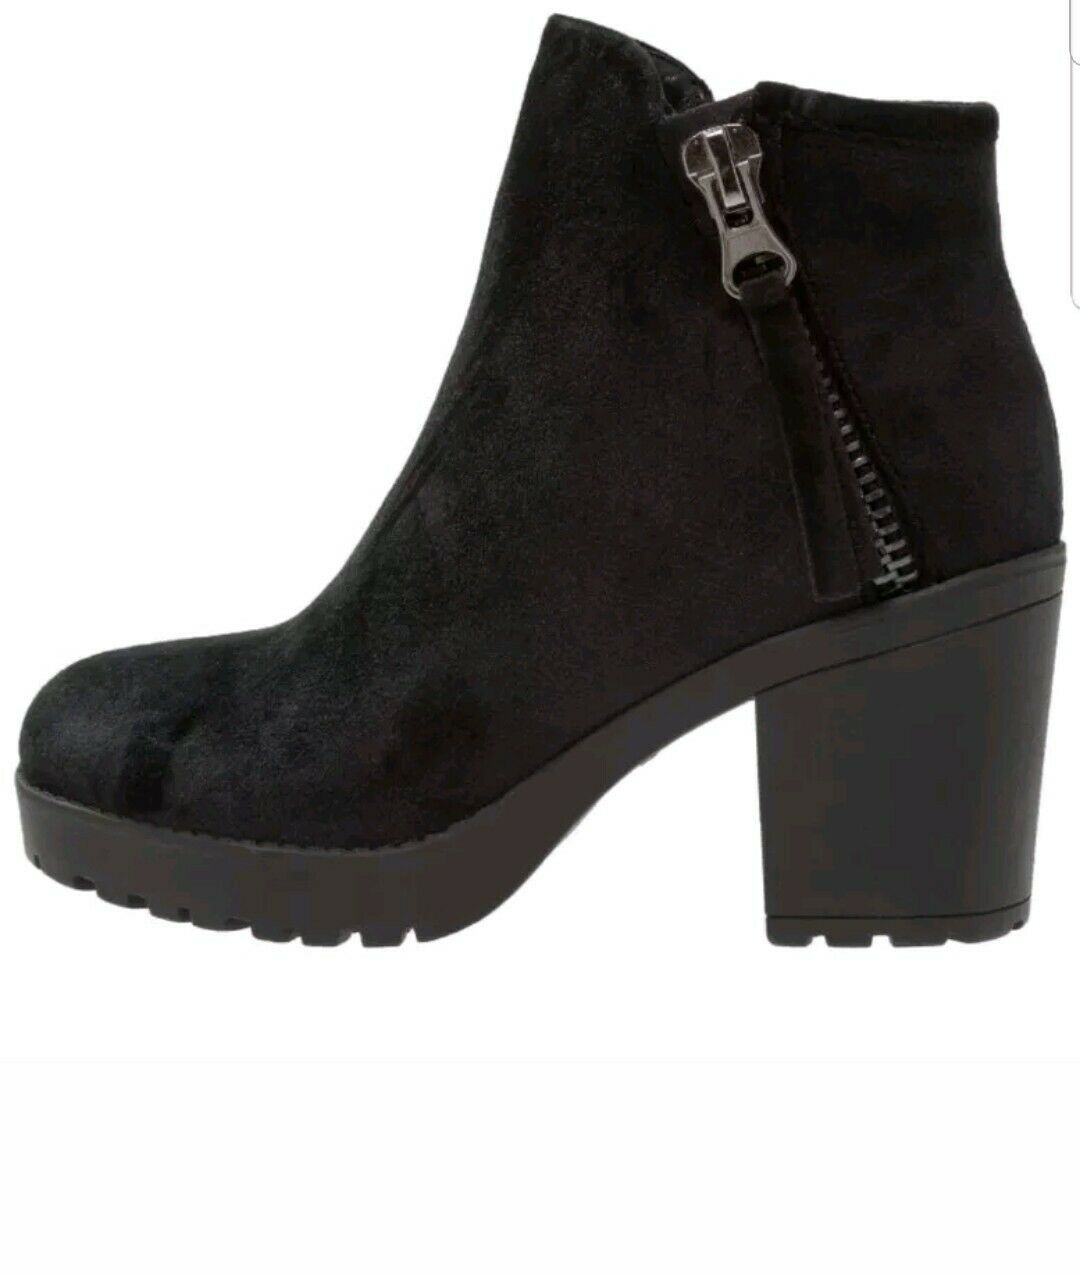 BRS CALL IT SPRING JOLLES BLACK LADIES BOOTS SIZE UK 6 39